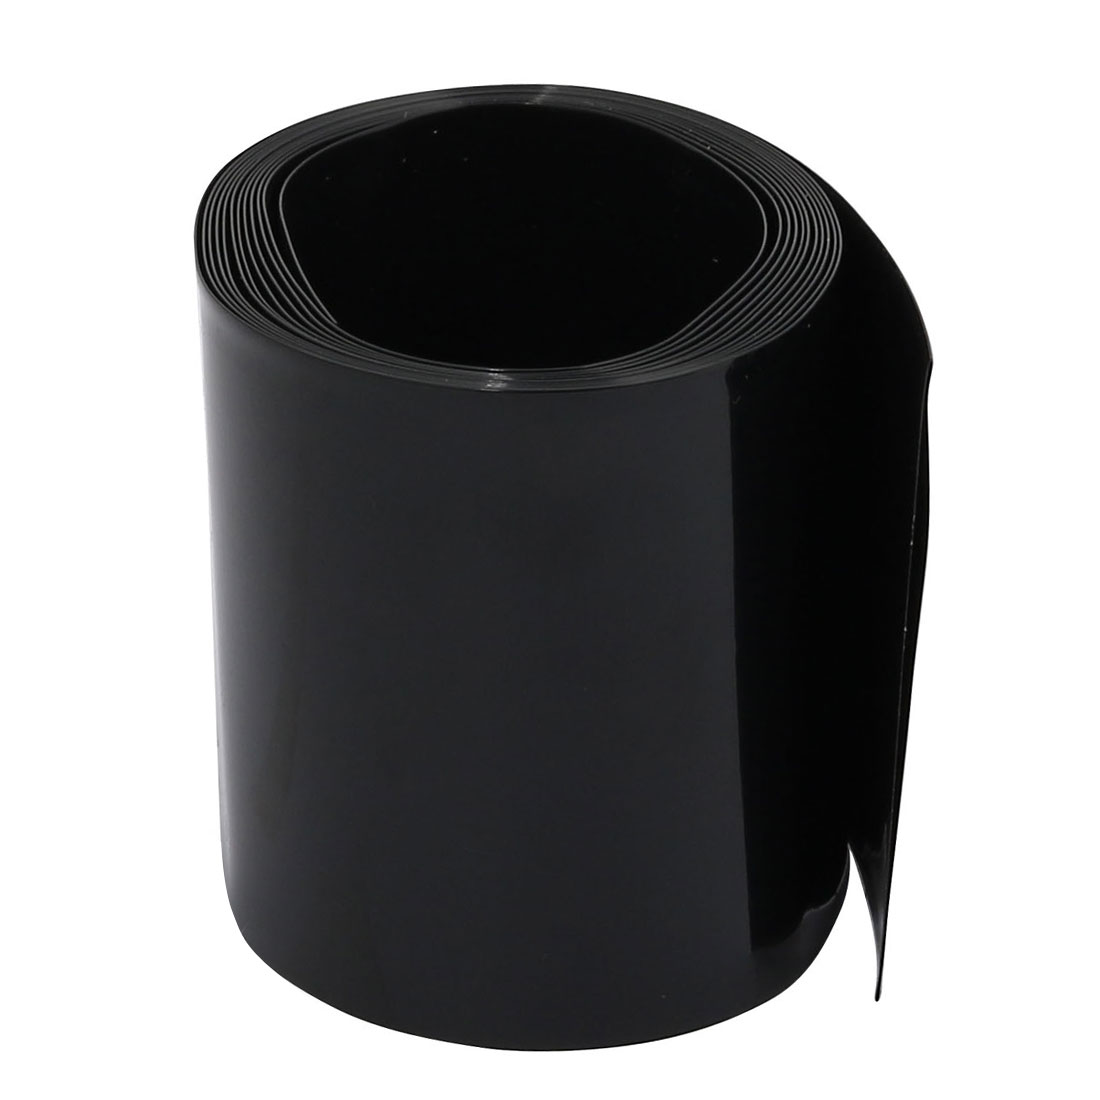 55mm Flat Width 2M Length PVC Heat Shrinkable Tube Black for AAA Batteries